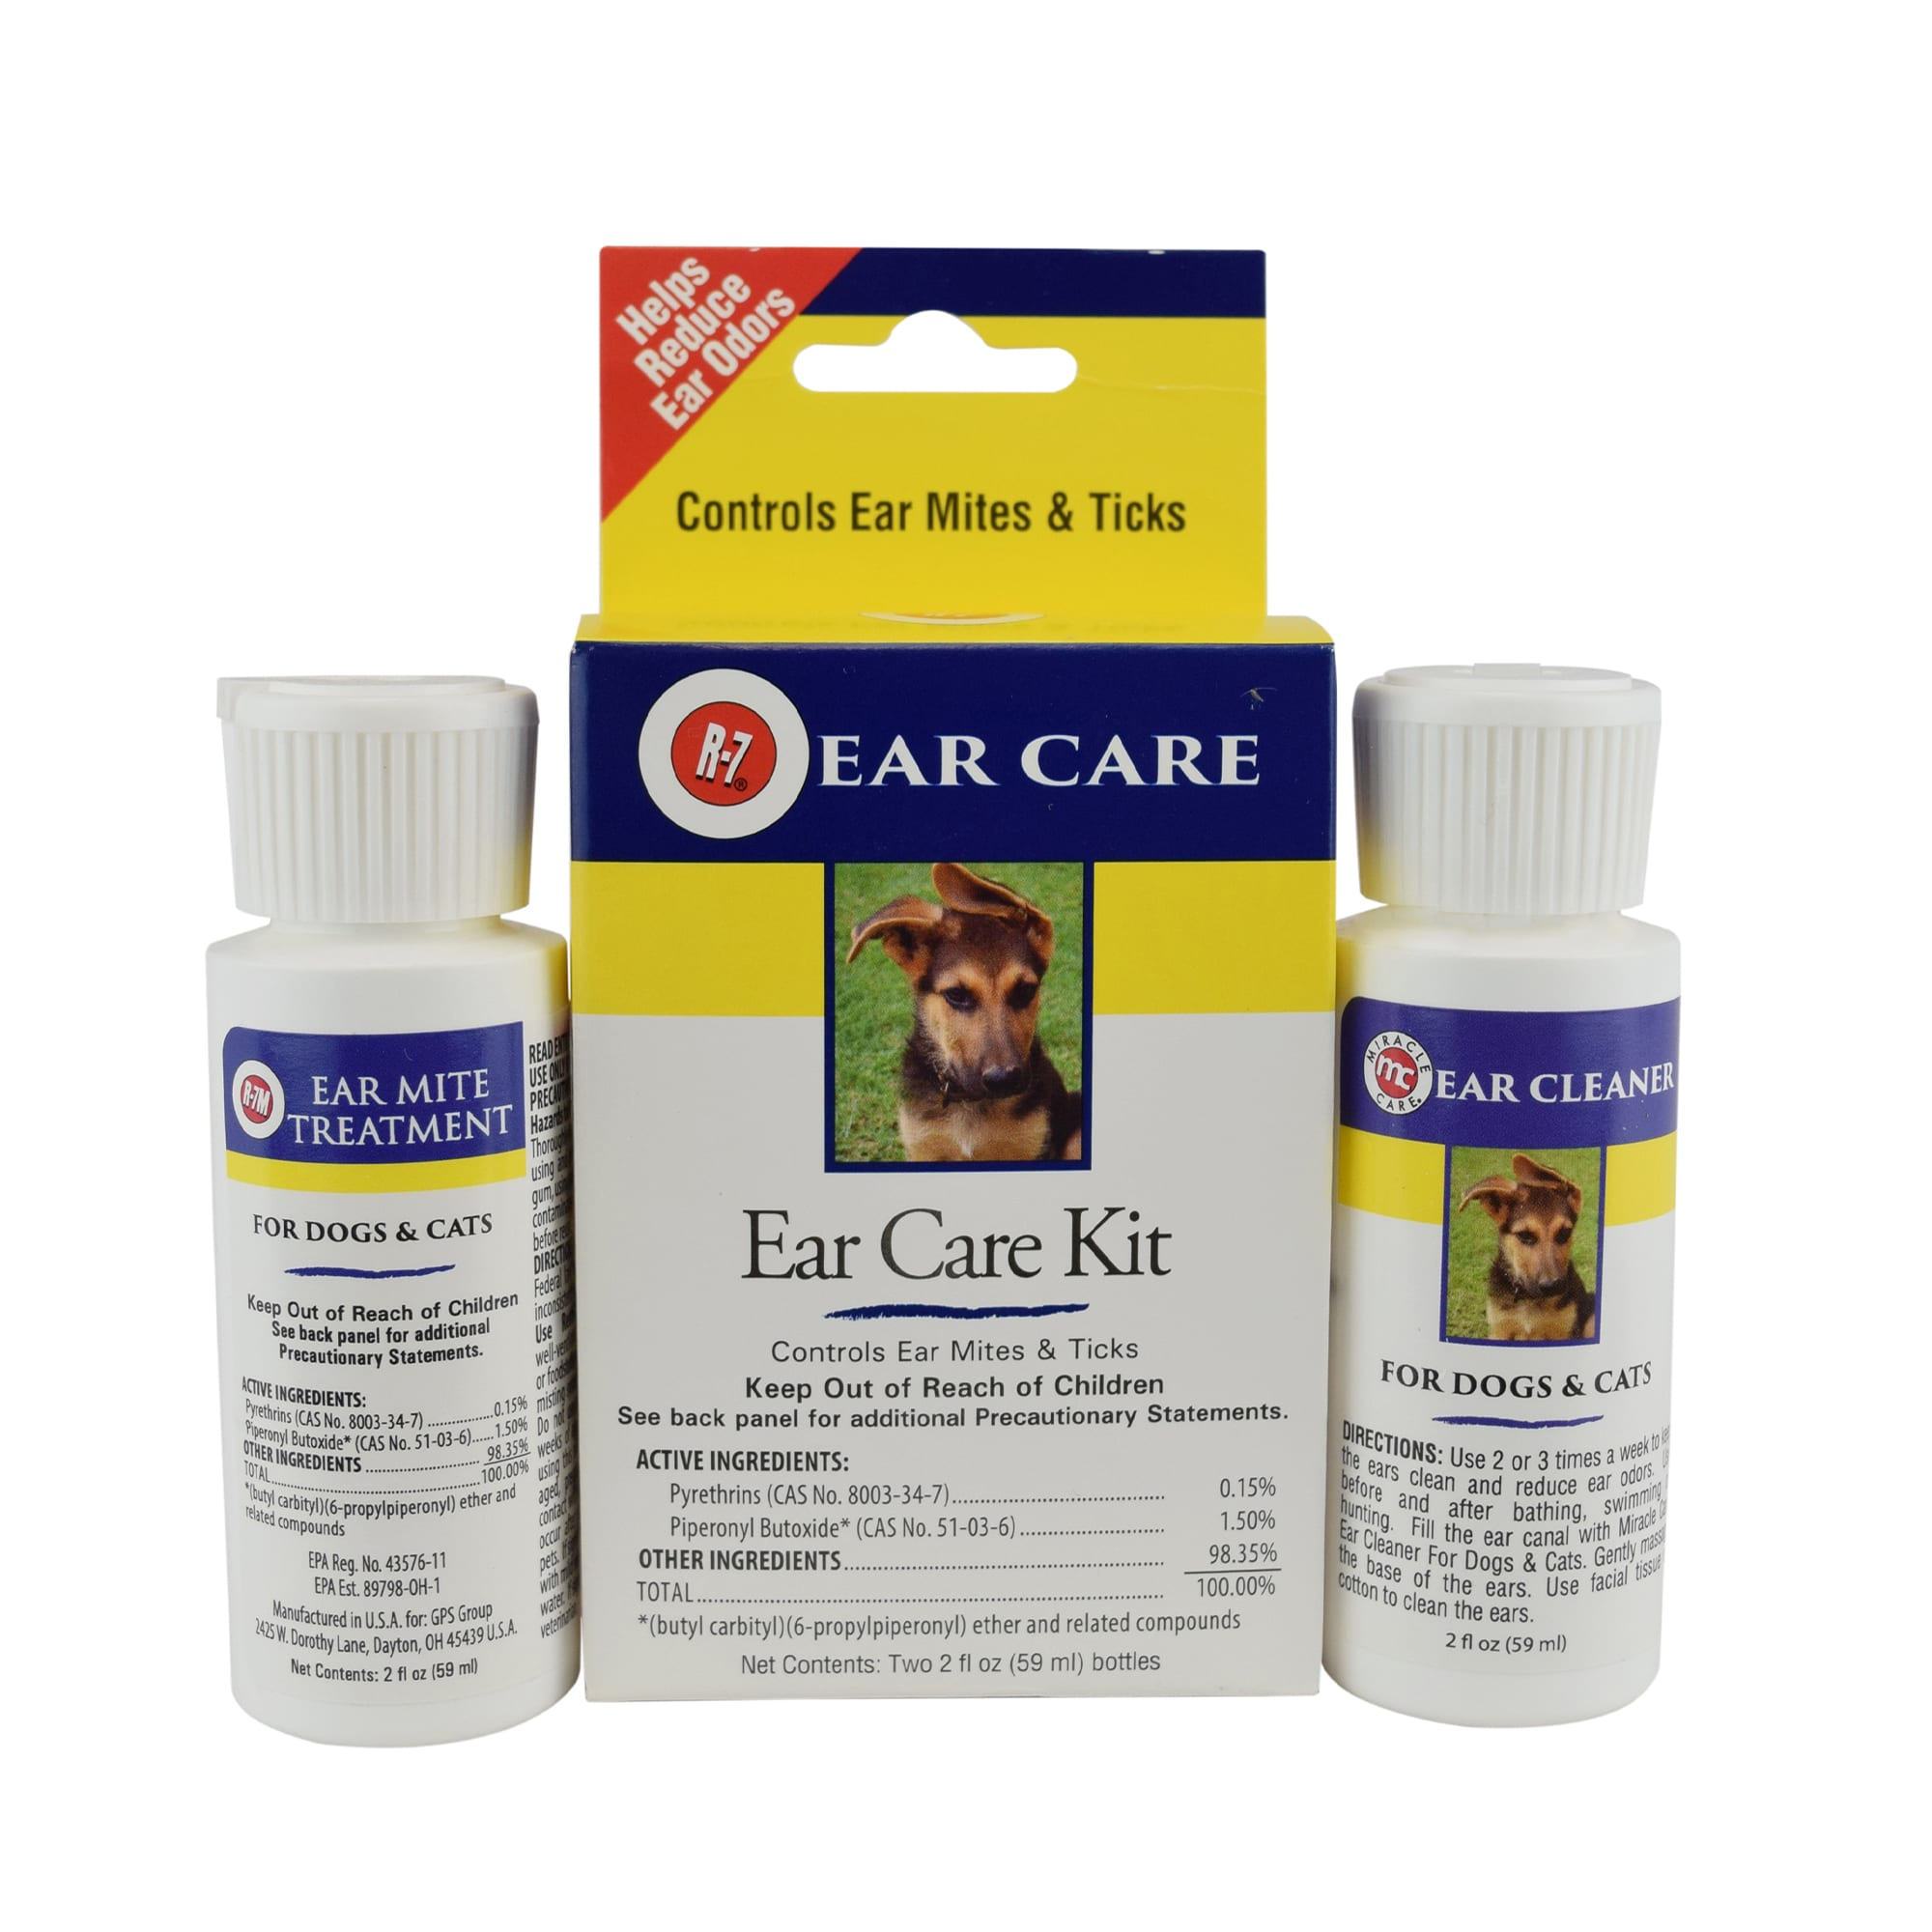 R-7 Ear Care Kit for Dogs & Cats, 2 FZ